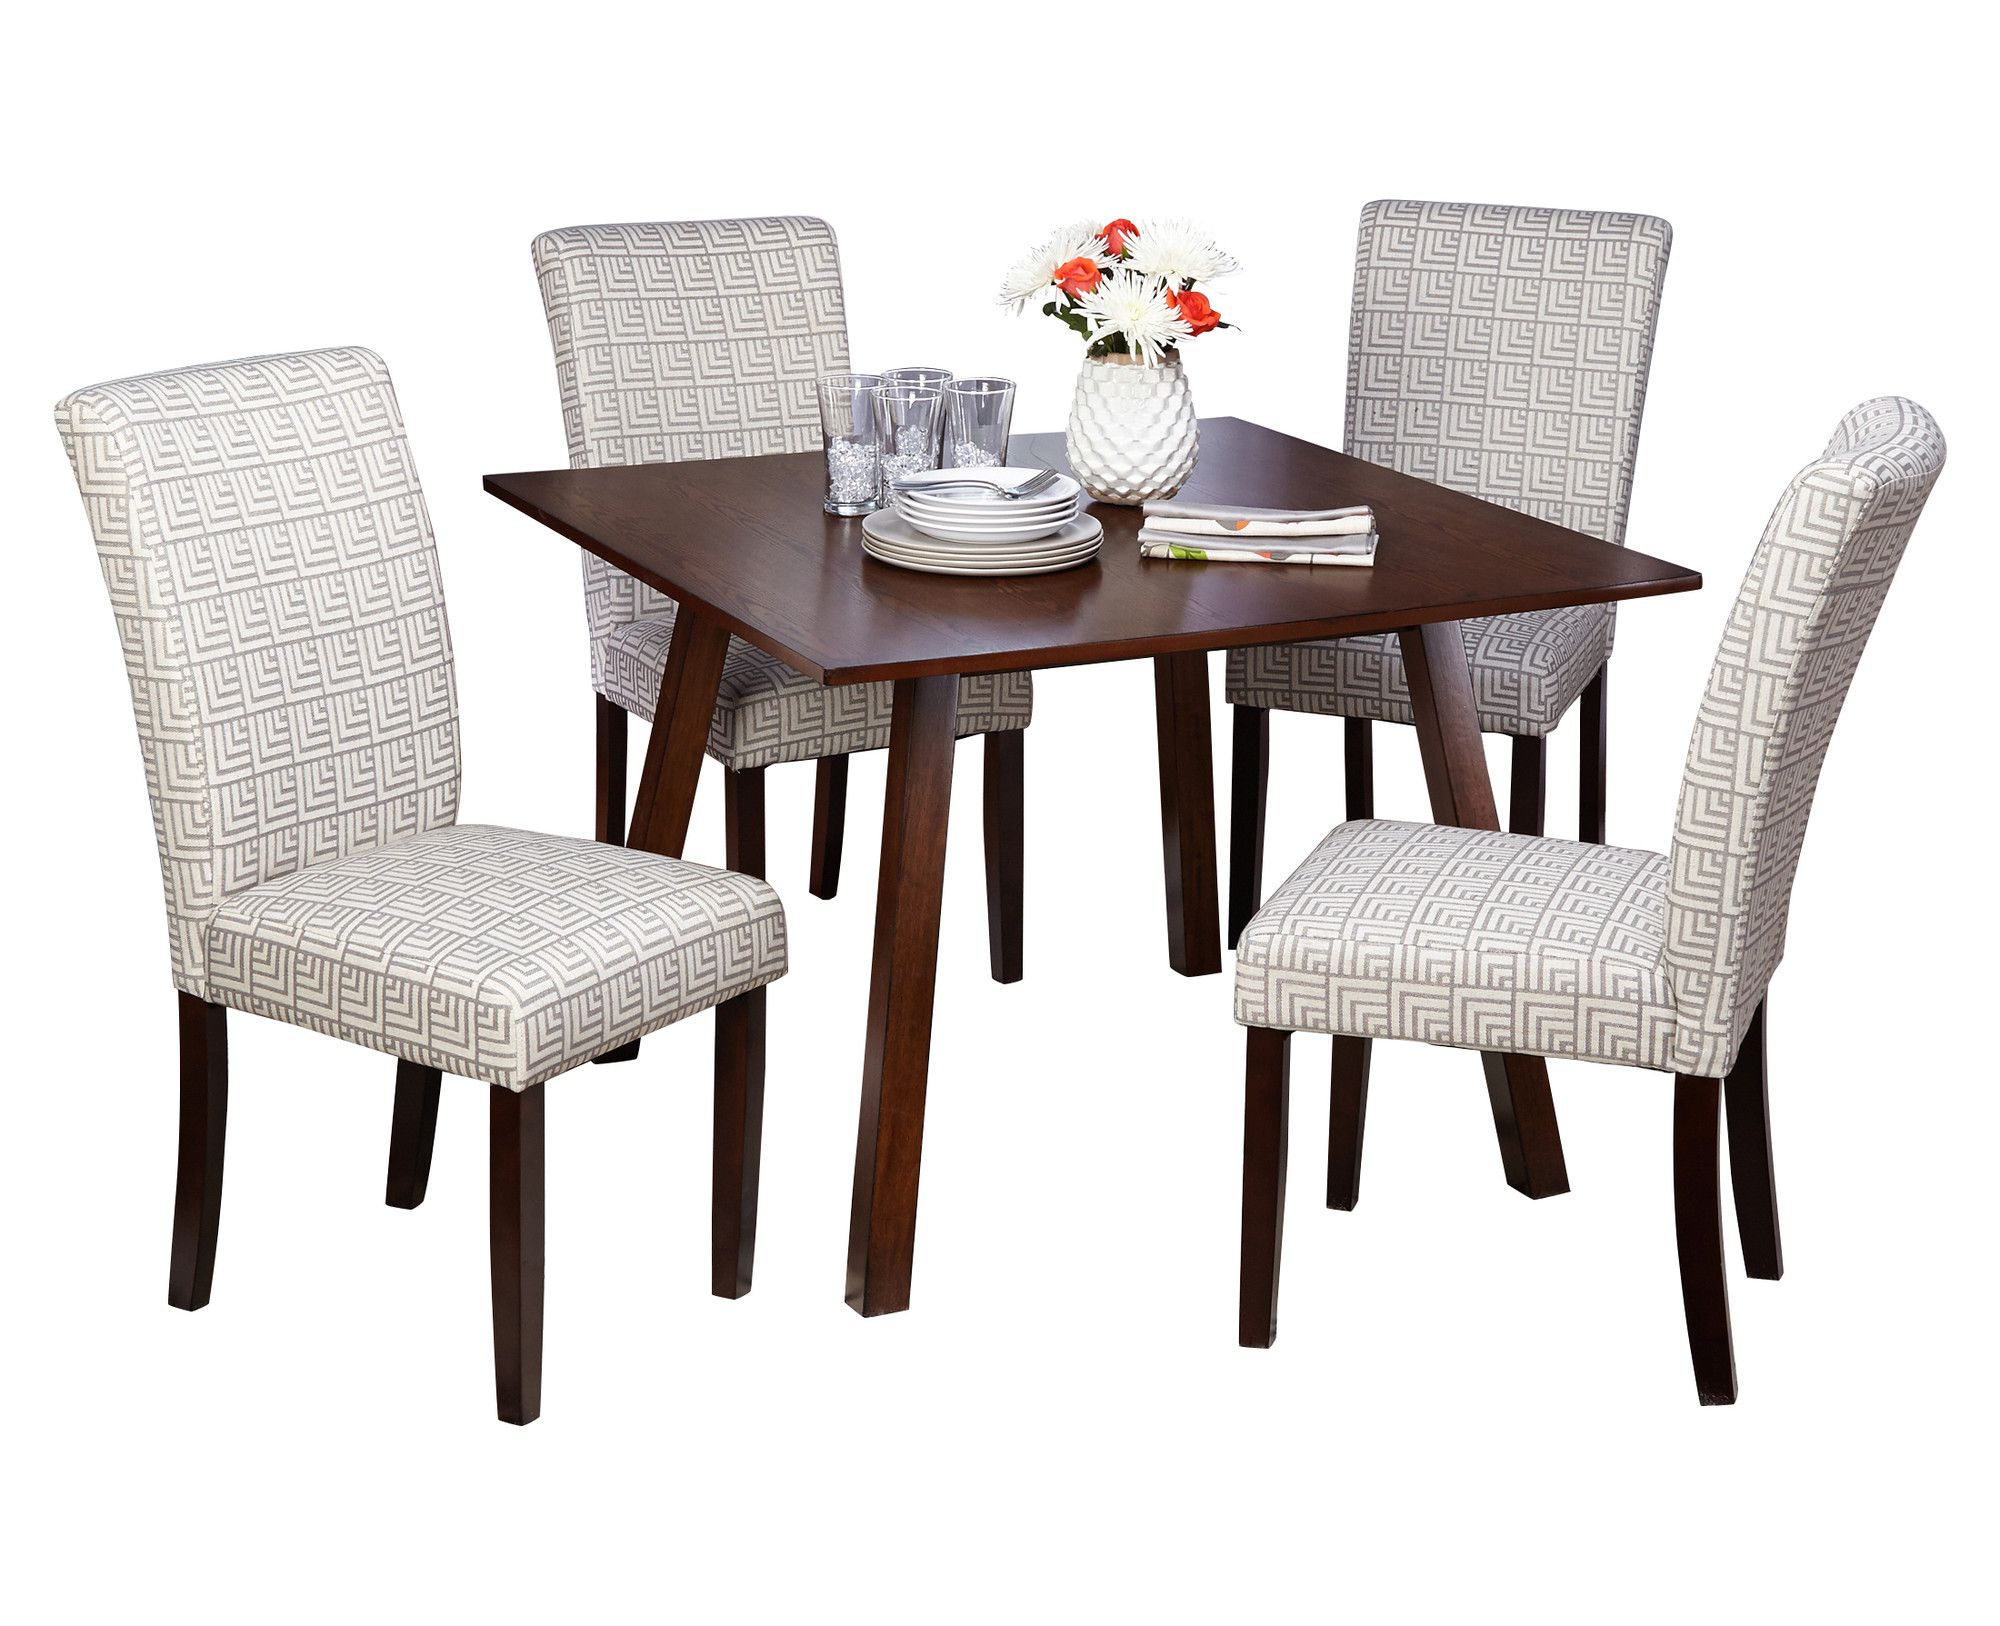 5 Piece Dining Set, Dining Within Newest Kaelin 5 Piece Dining Sets (Gallery 2 of 25)